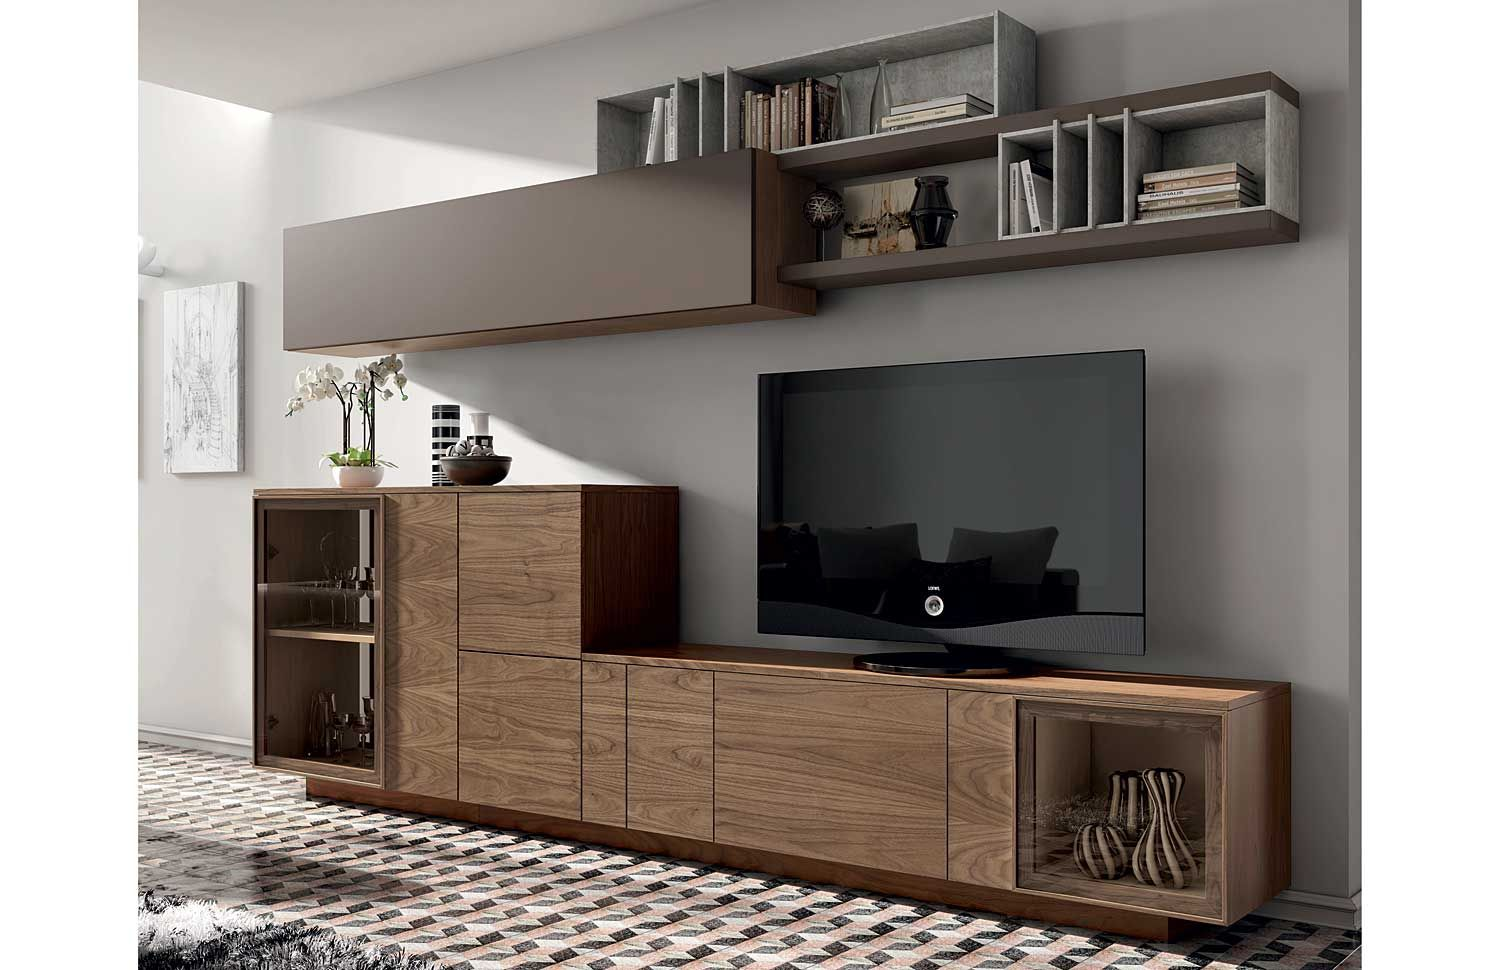 Dm Muebles Salon Escandinavo Nordik 5 Material Dm Densidad Media Dm